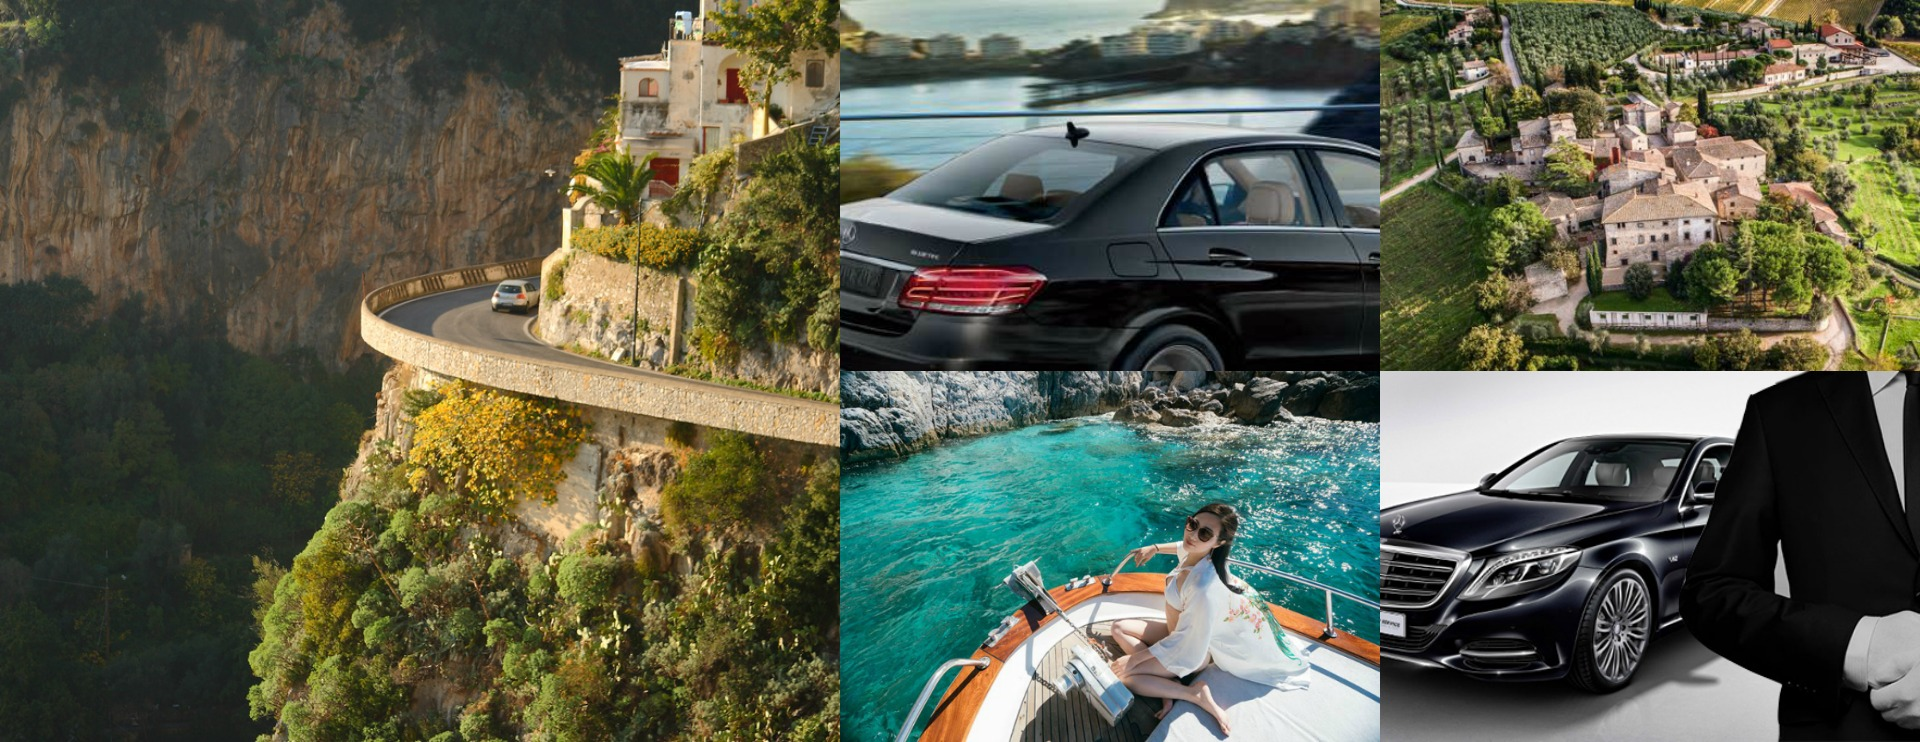 Private Drivers & Transportation for You and Your Tribe Here in Italy